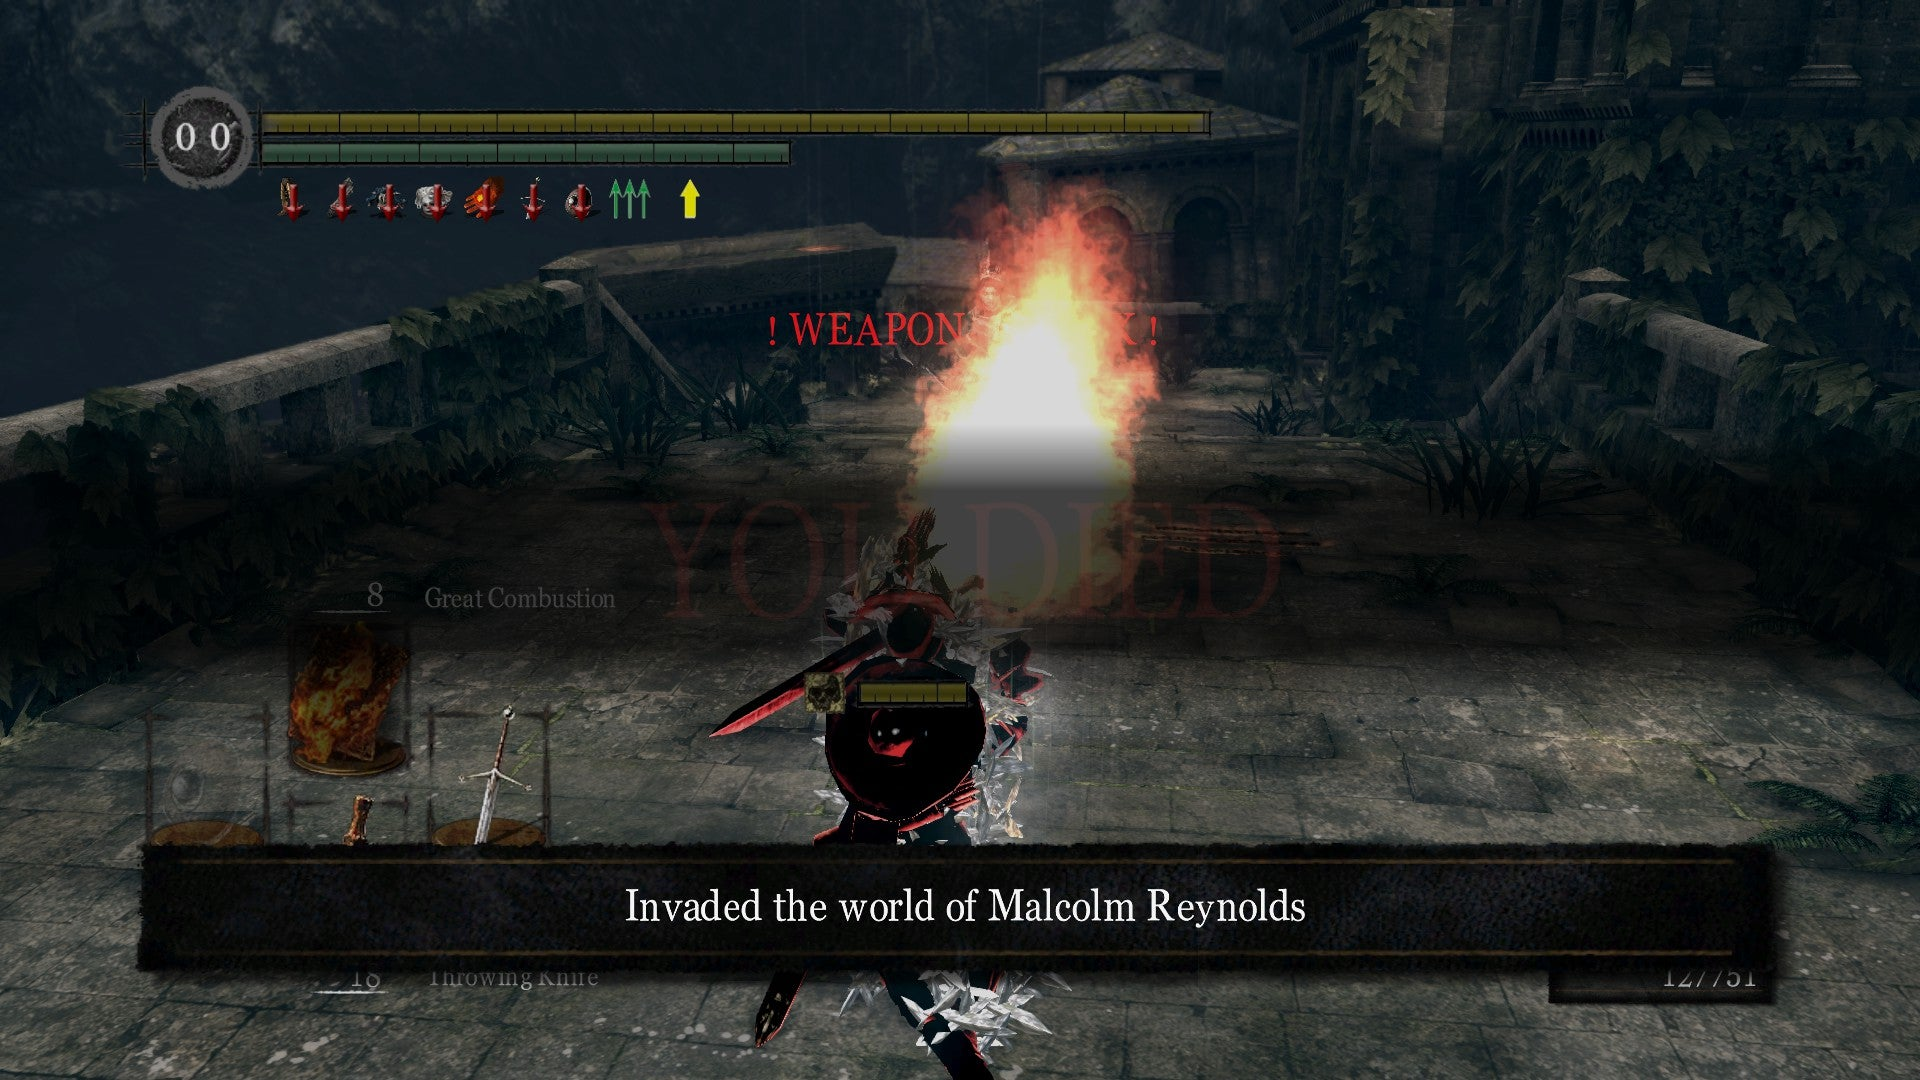 Dark Souls 3 PC Cheater Spent Hours Streaming Their Exploits This Weekend